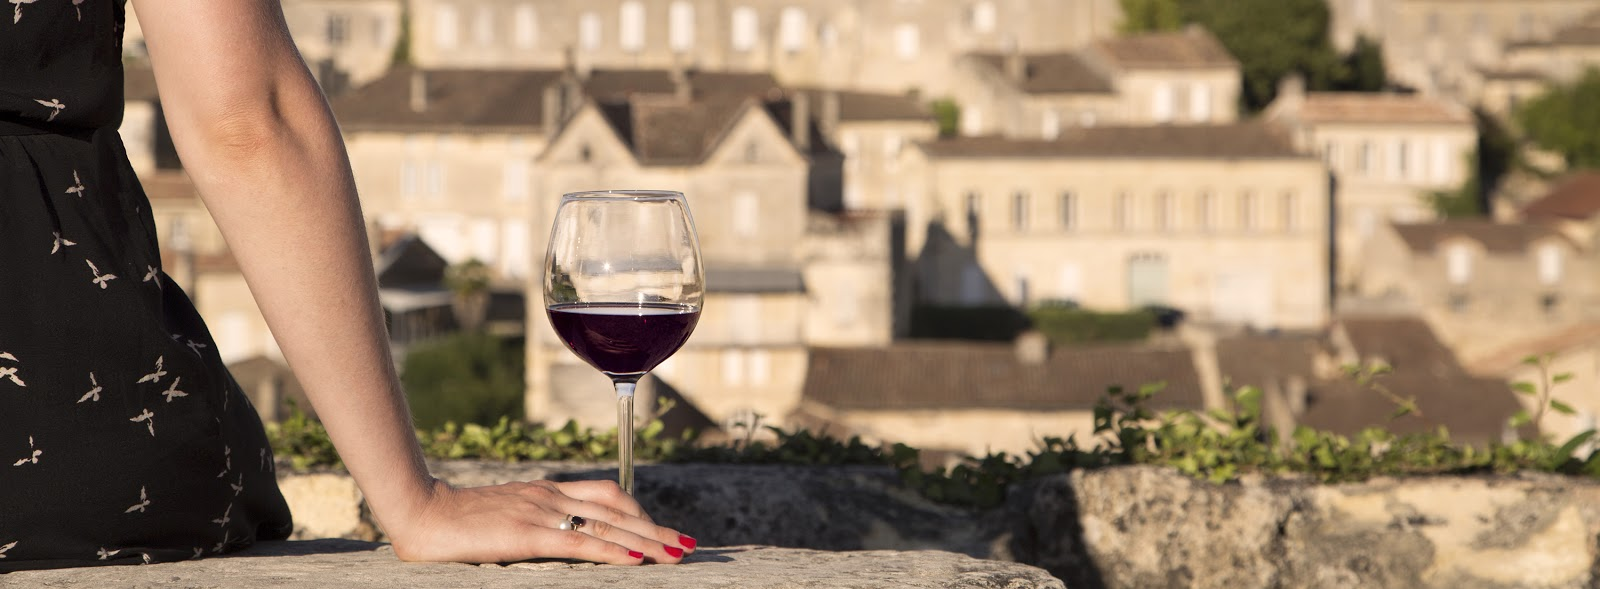 The wines of St-Émilion